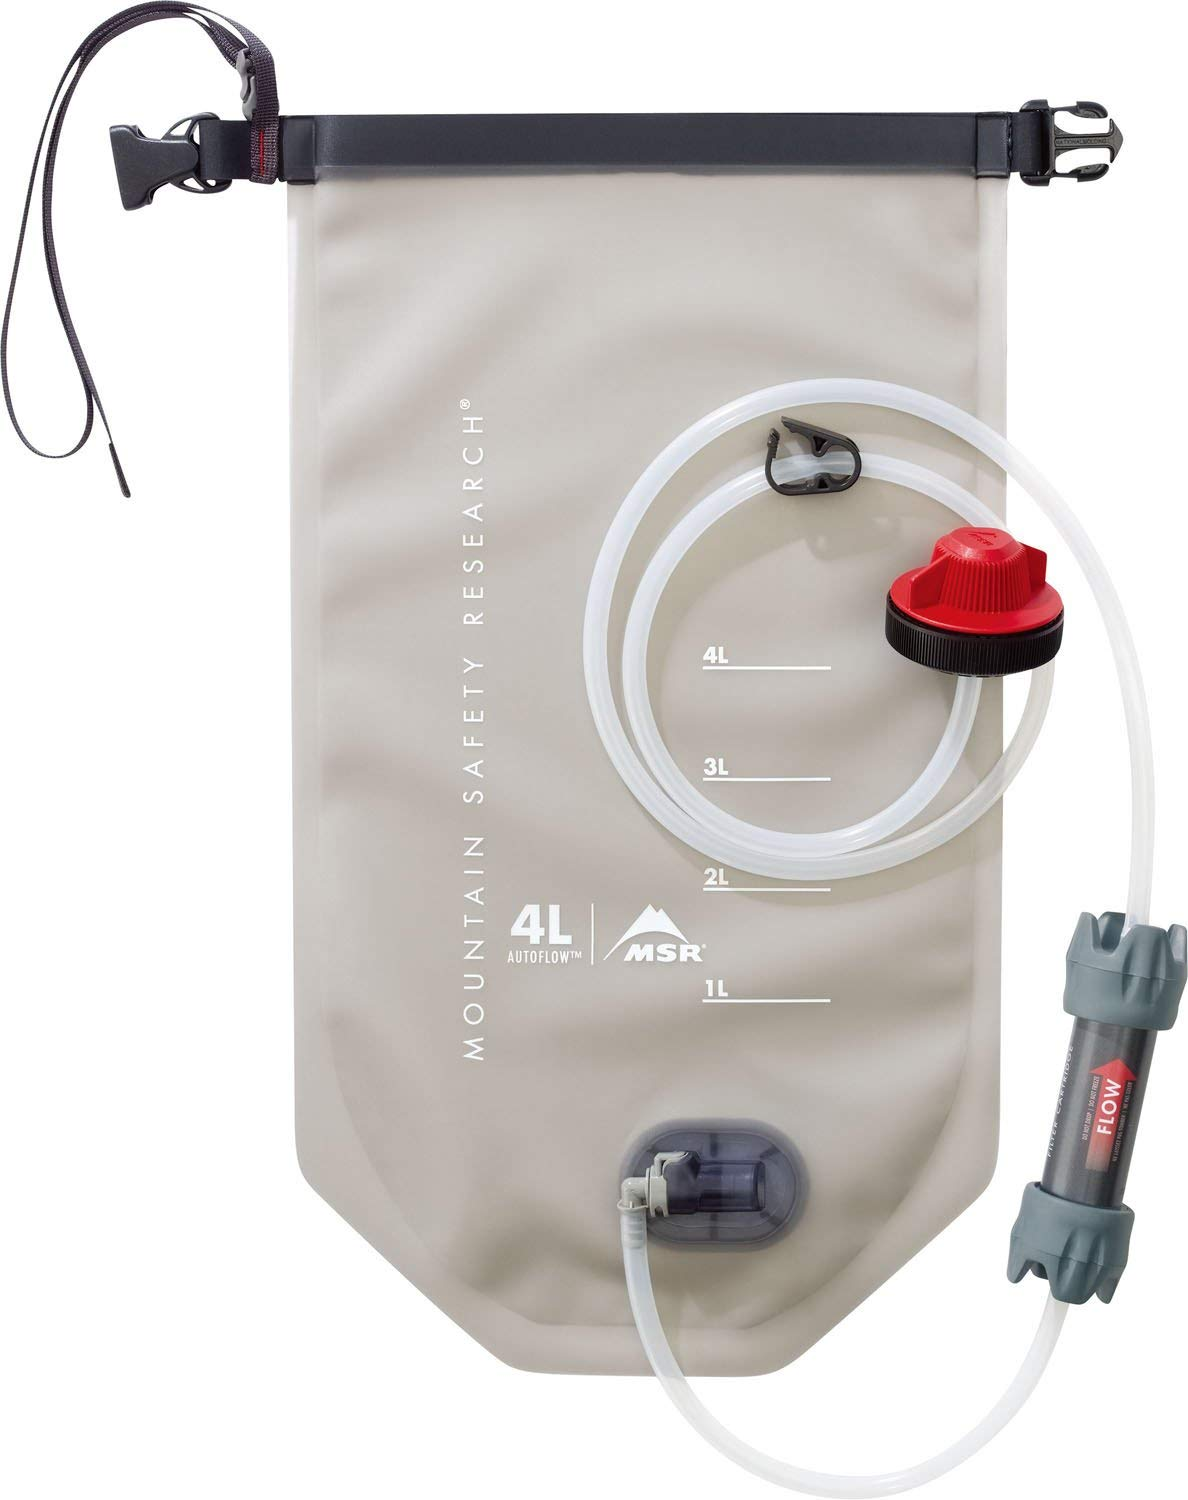 MSR Gravity Water Filter